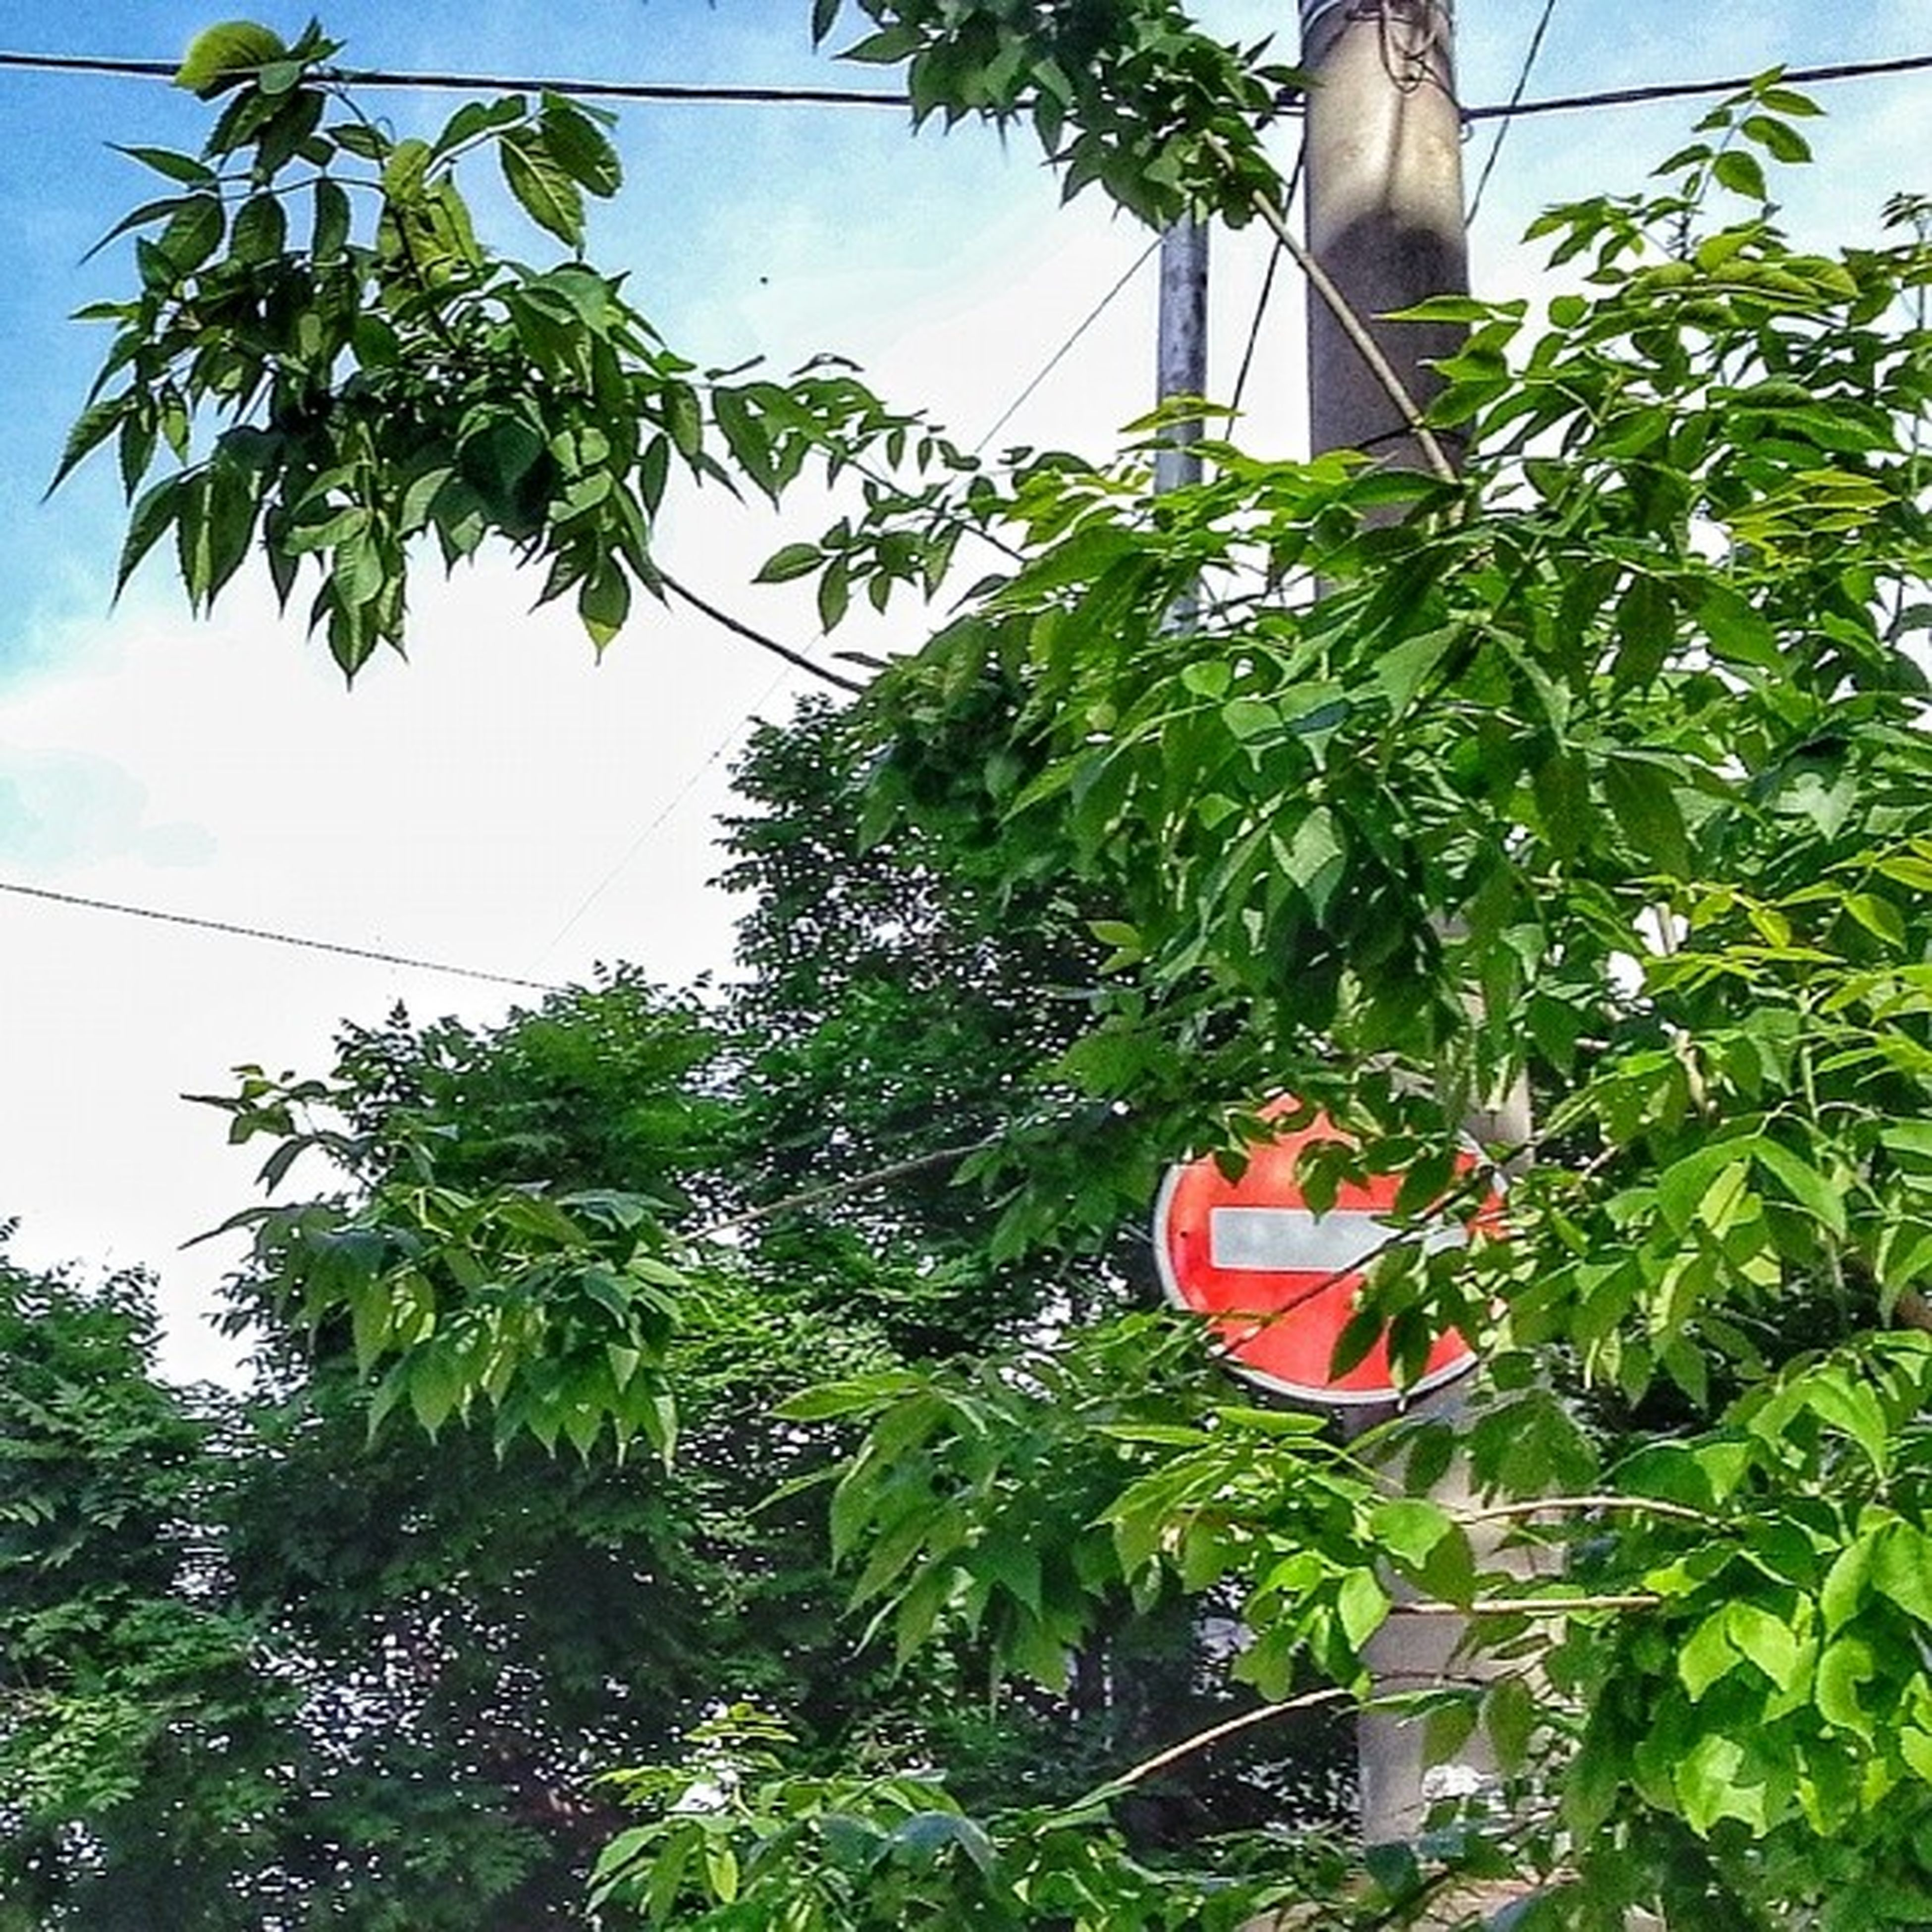 tree, low angle view, hanging, growth, green color, sky, plant, day, leaf, nature, no people, outdoors, branch, red, green, clear sky, built structure, sunlight, building exterior, pole